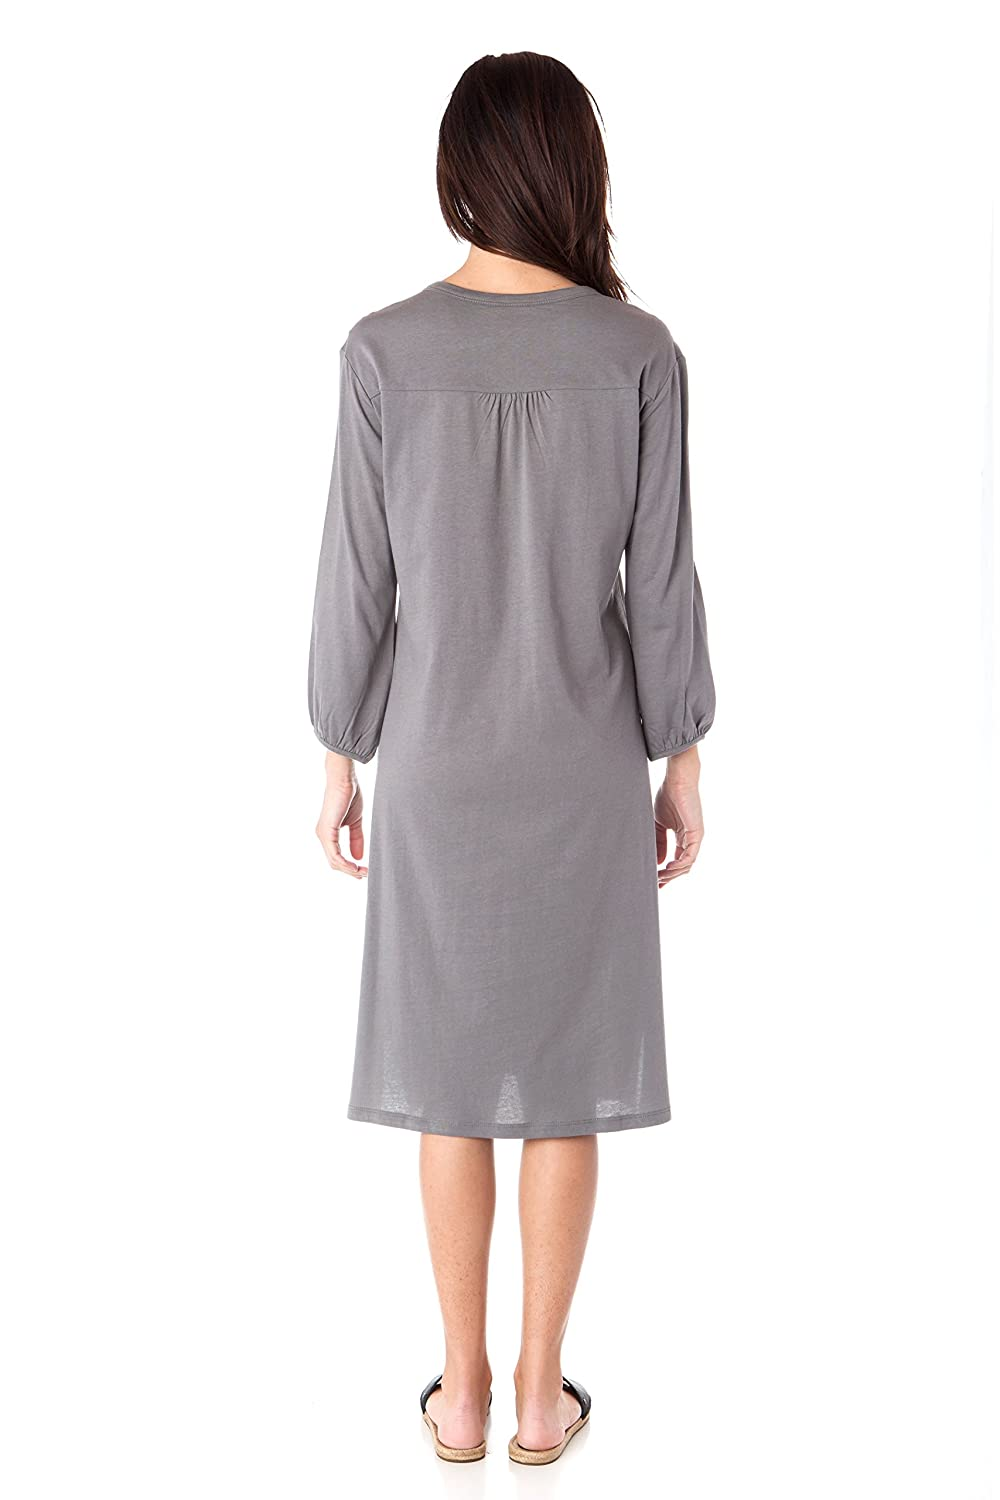 A to Z Long Sleeve Loose Dress BD-59